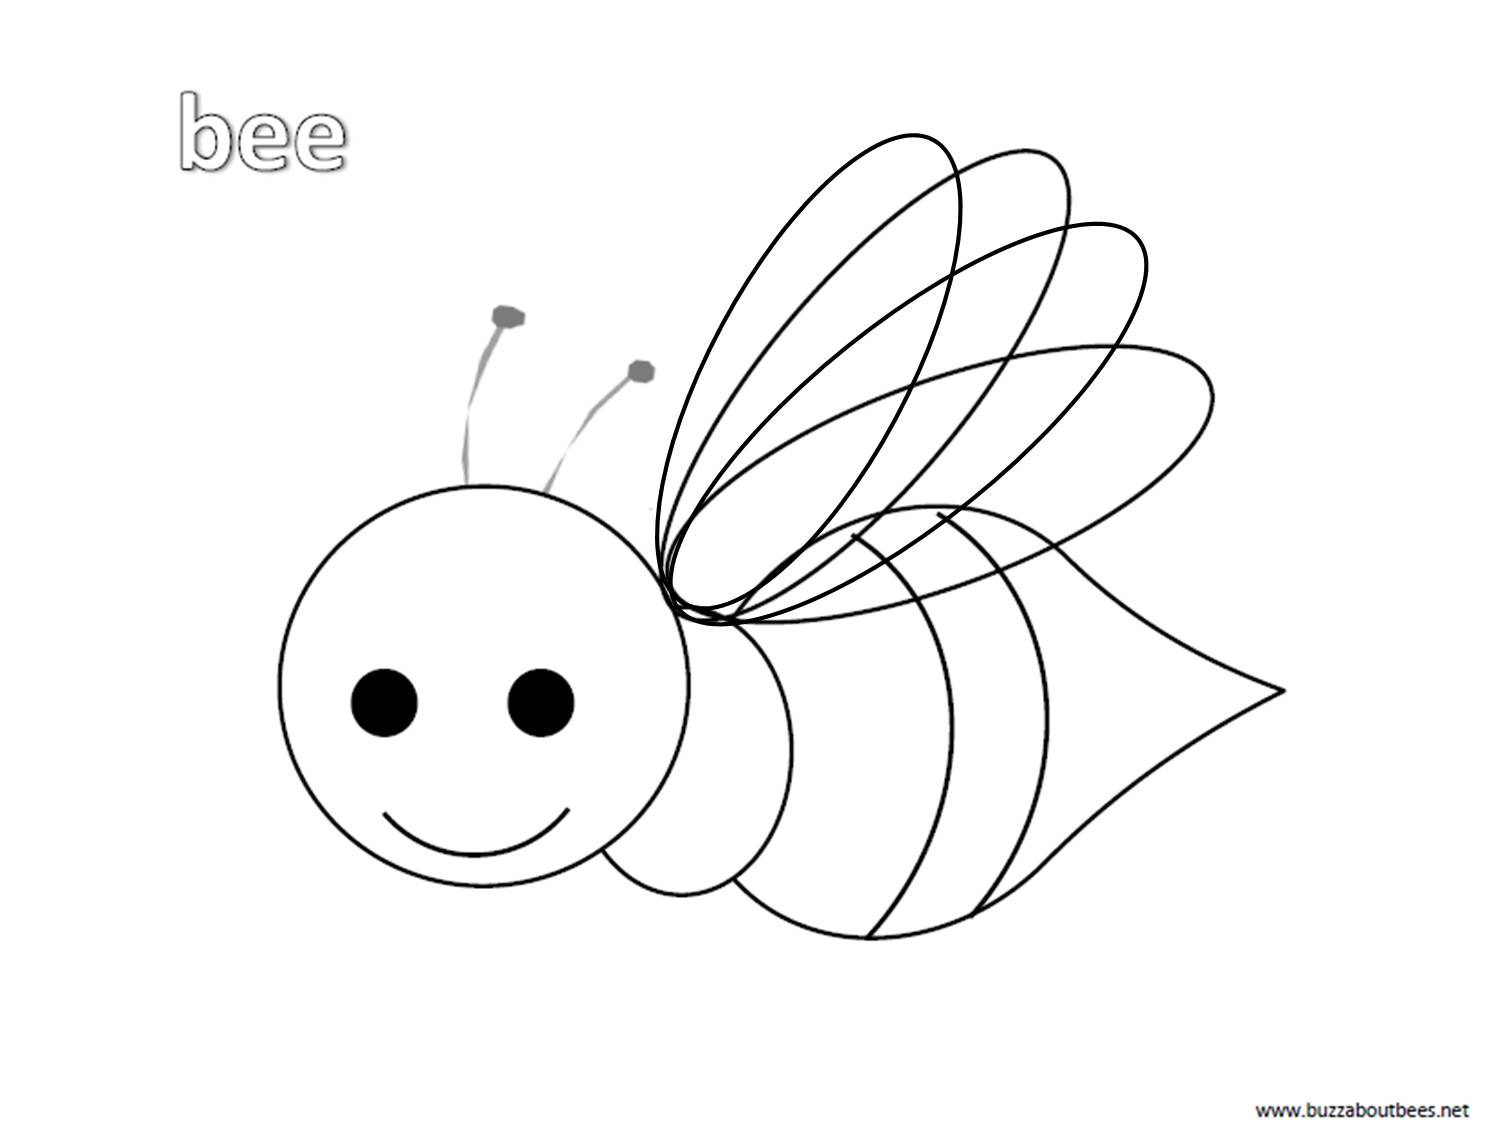 bee for coloring bee and flower coloring pages getcoloringpagescom for coloring bee